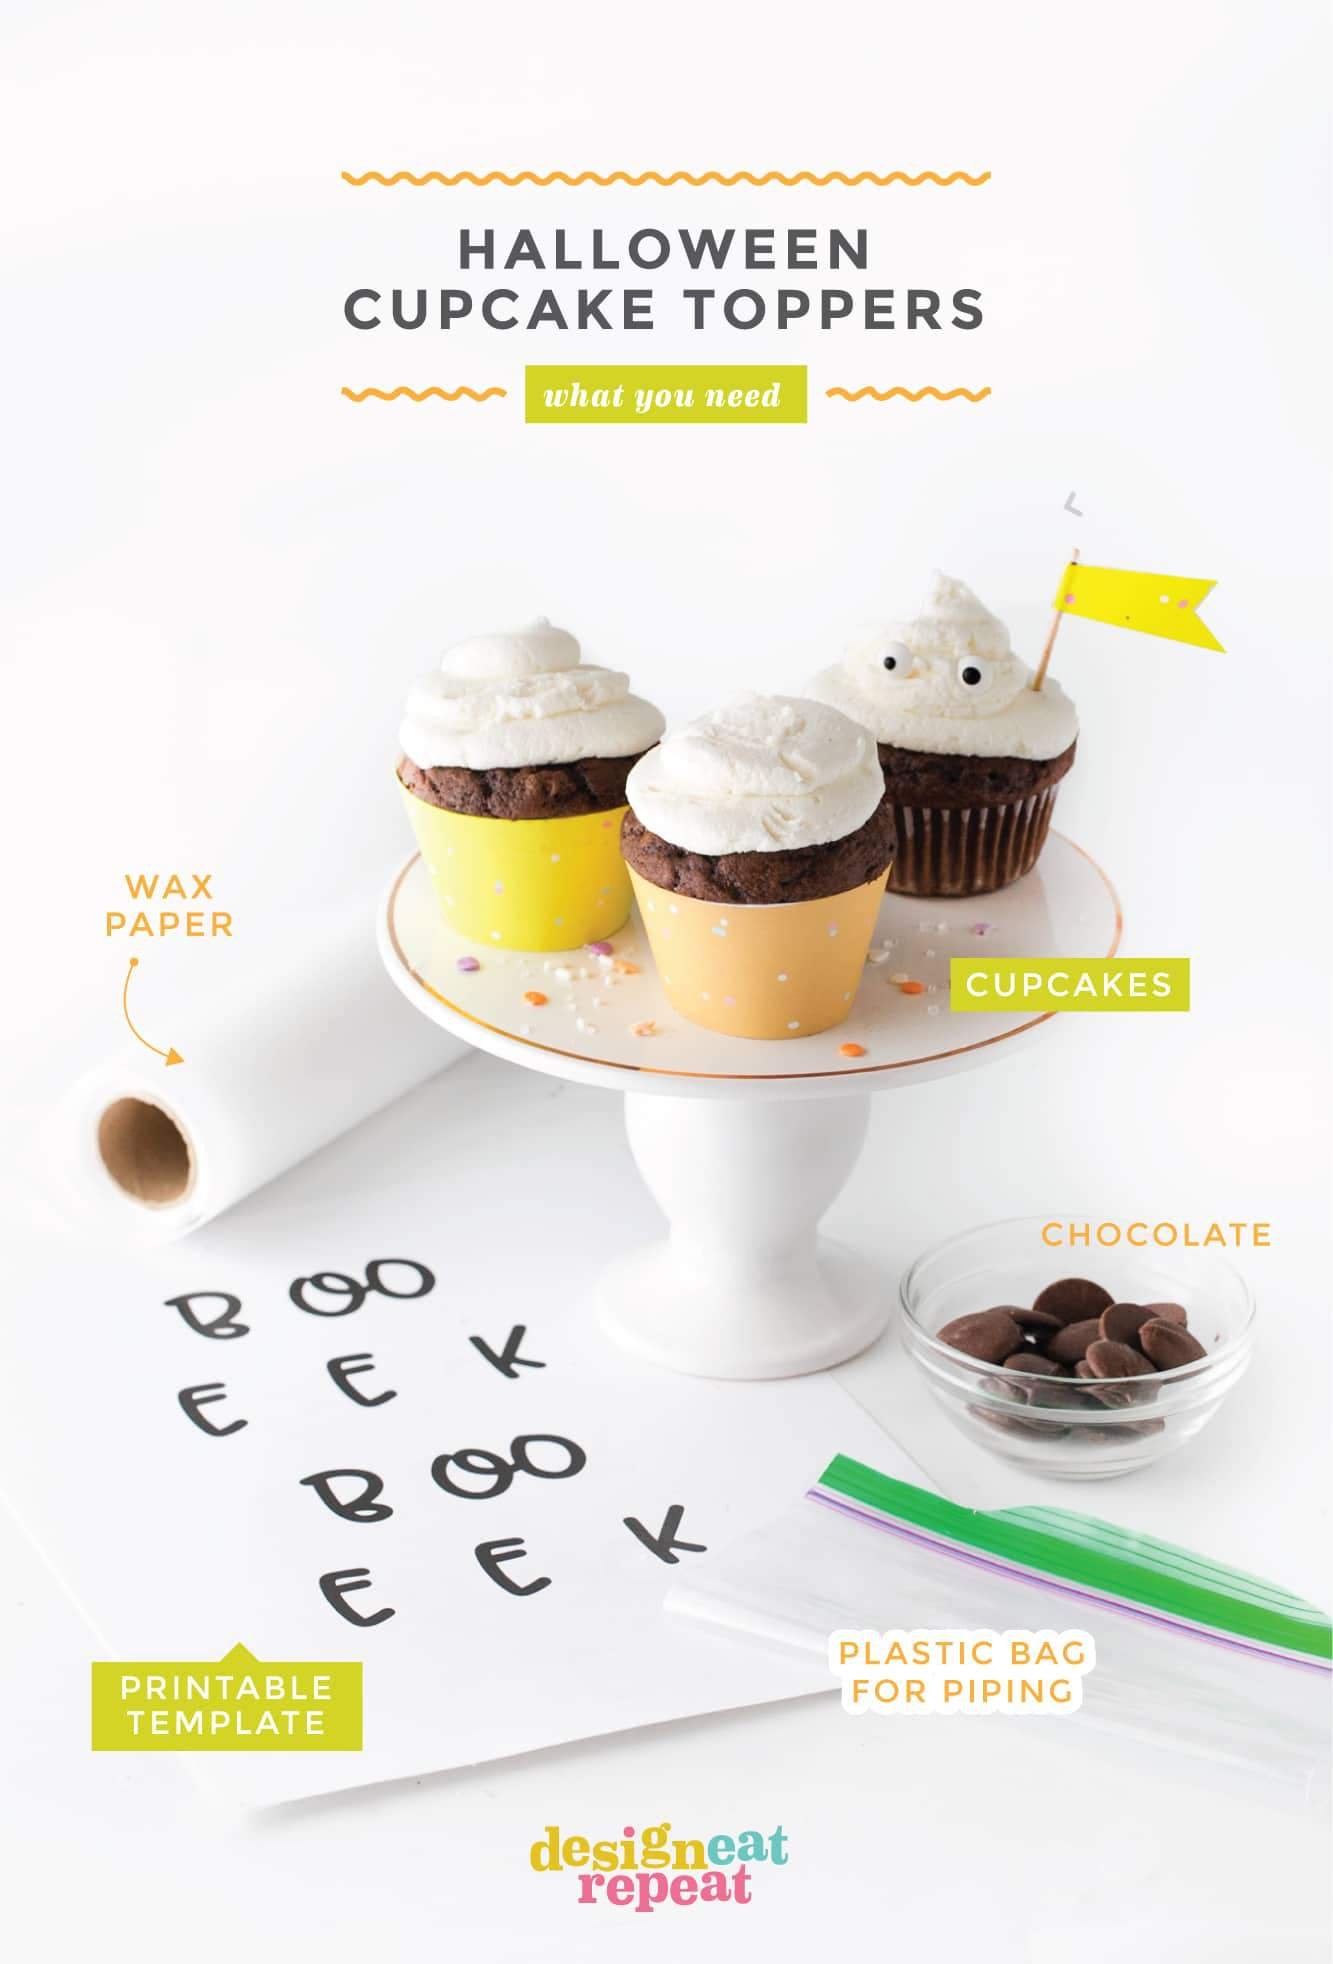 Materials for Edible Halloween Cupcake Toppers. Cupcakes, printable template, wax paper, plastic bag, and chocolate.